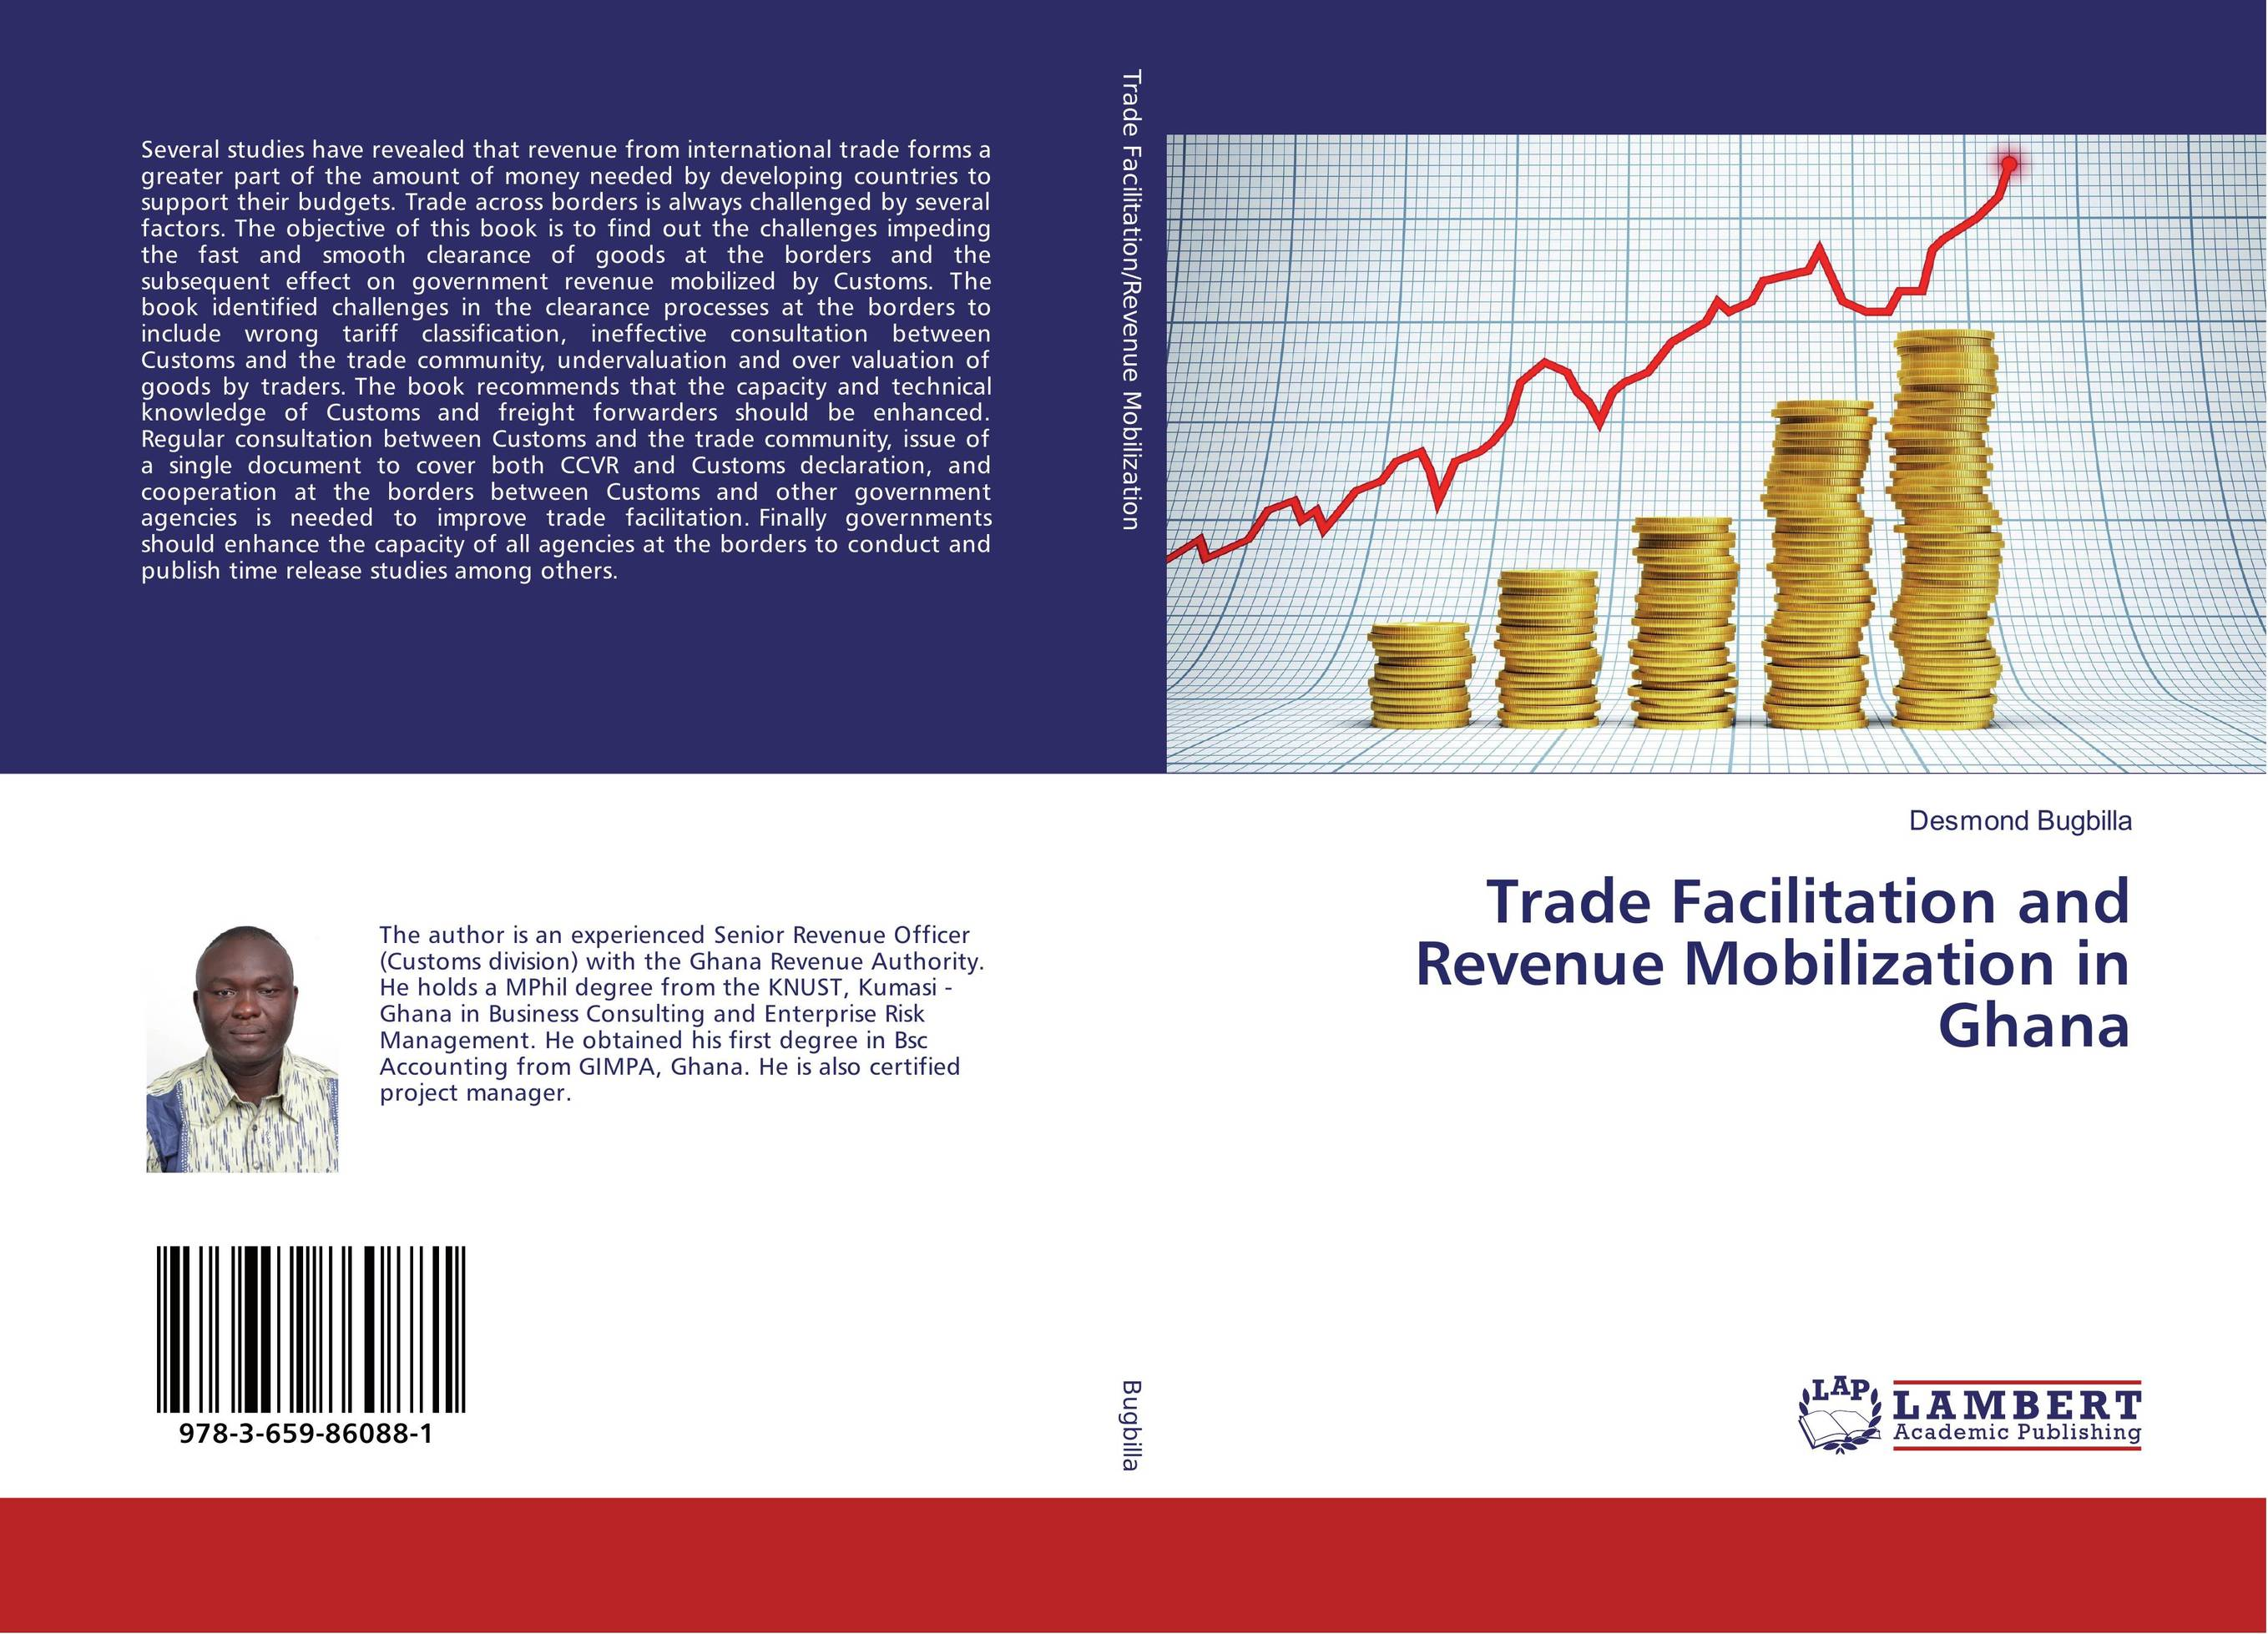 Trade Facilitation and Revenue Mobilization in Ghana